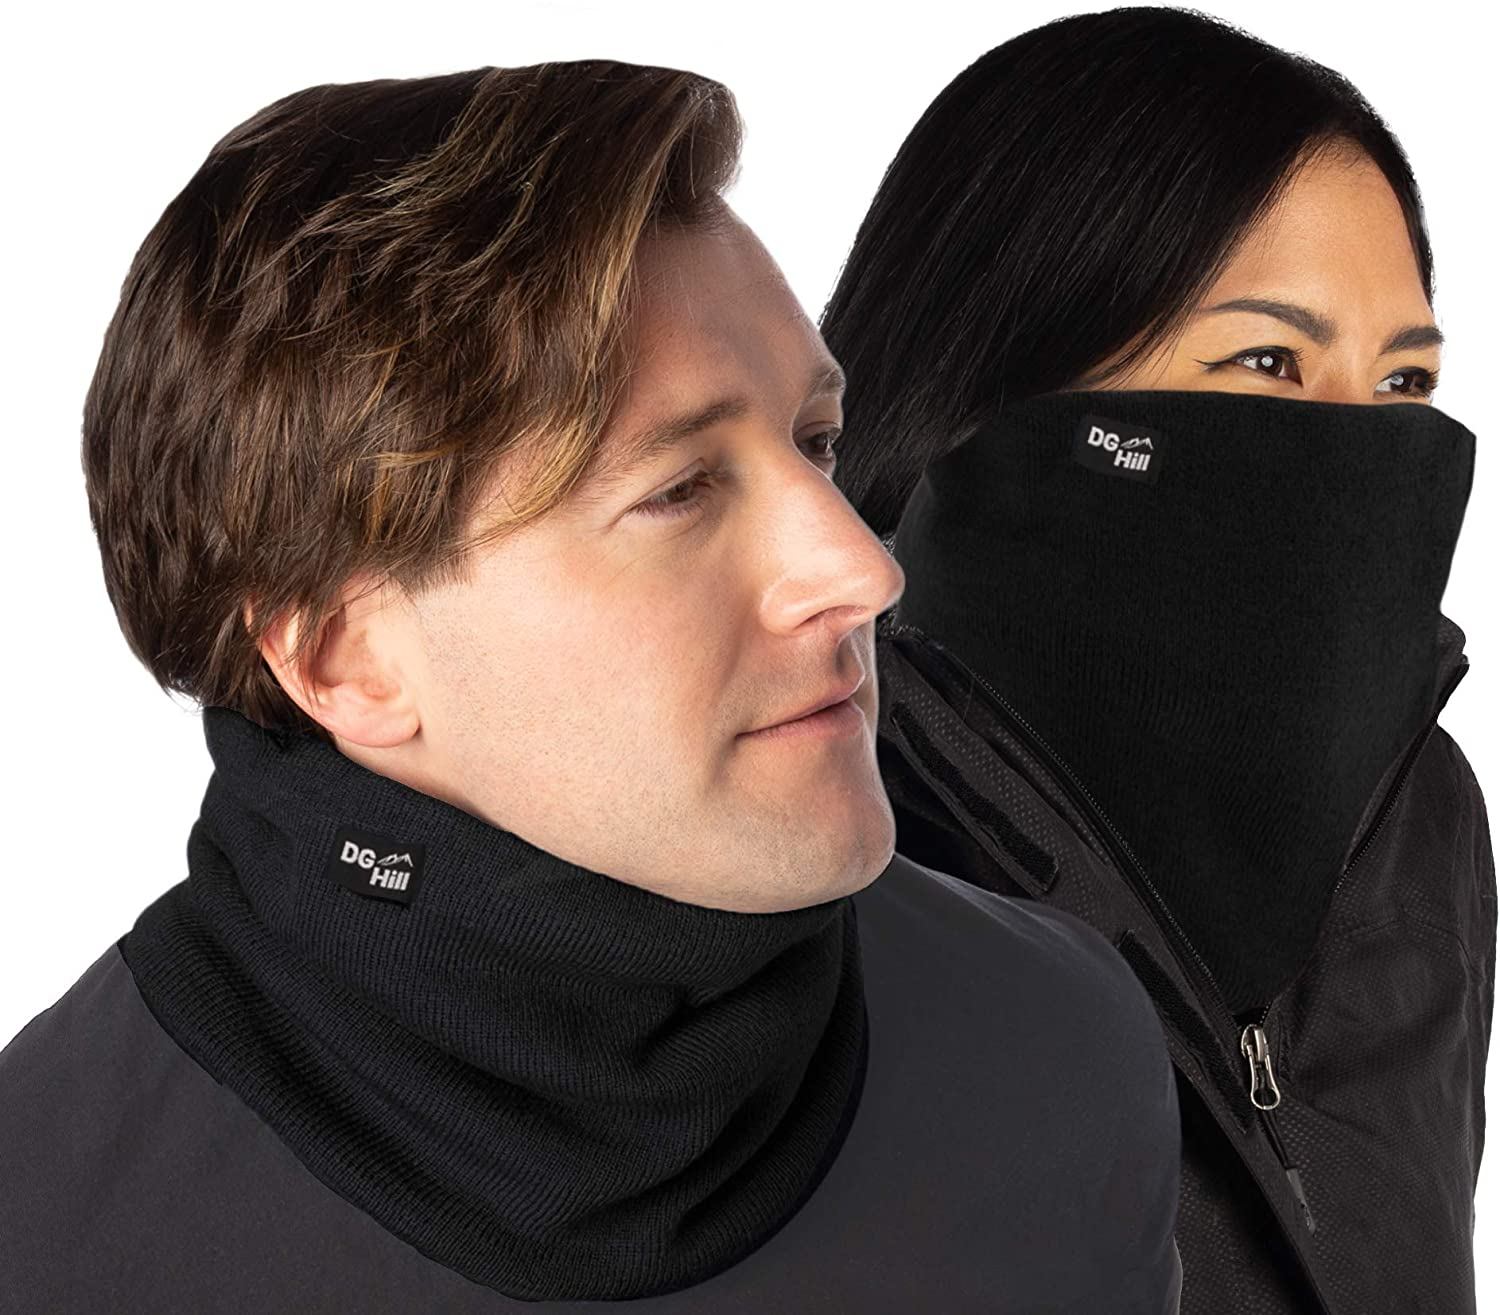 DG Hill (2 Pack) Thick Heat Trapping Thermal Neck Warmers, Winter Neck Gaiter Set Fleece Lined